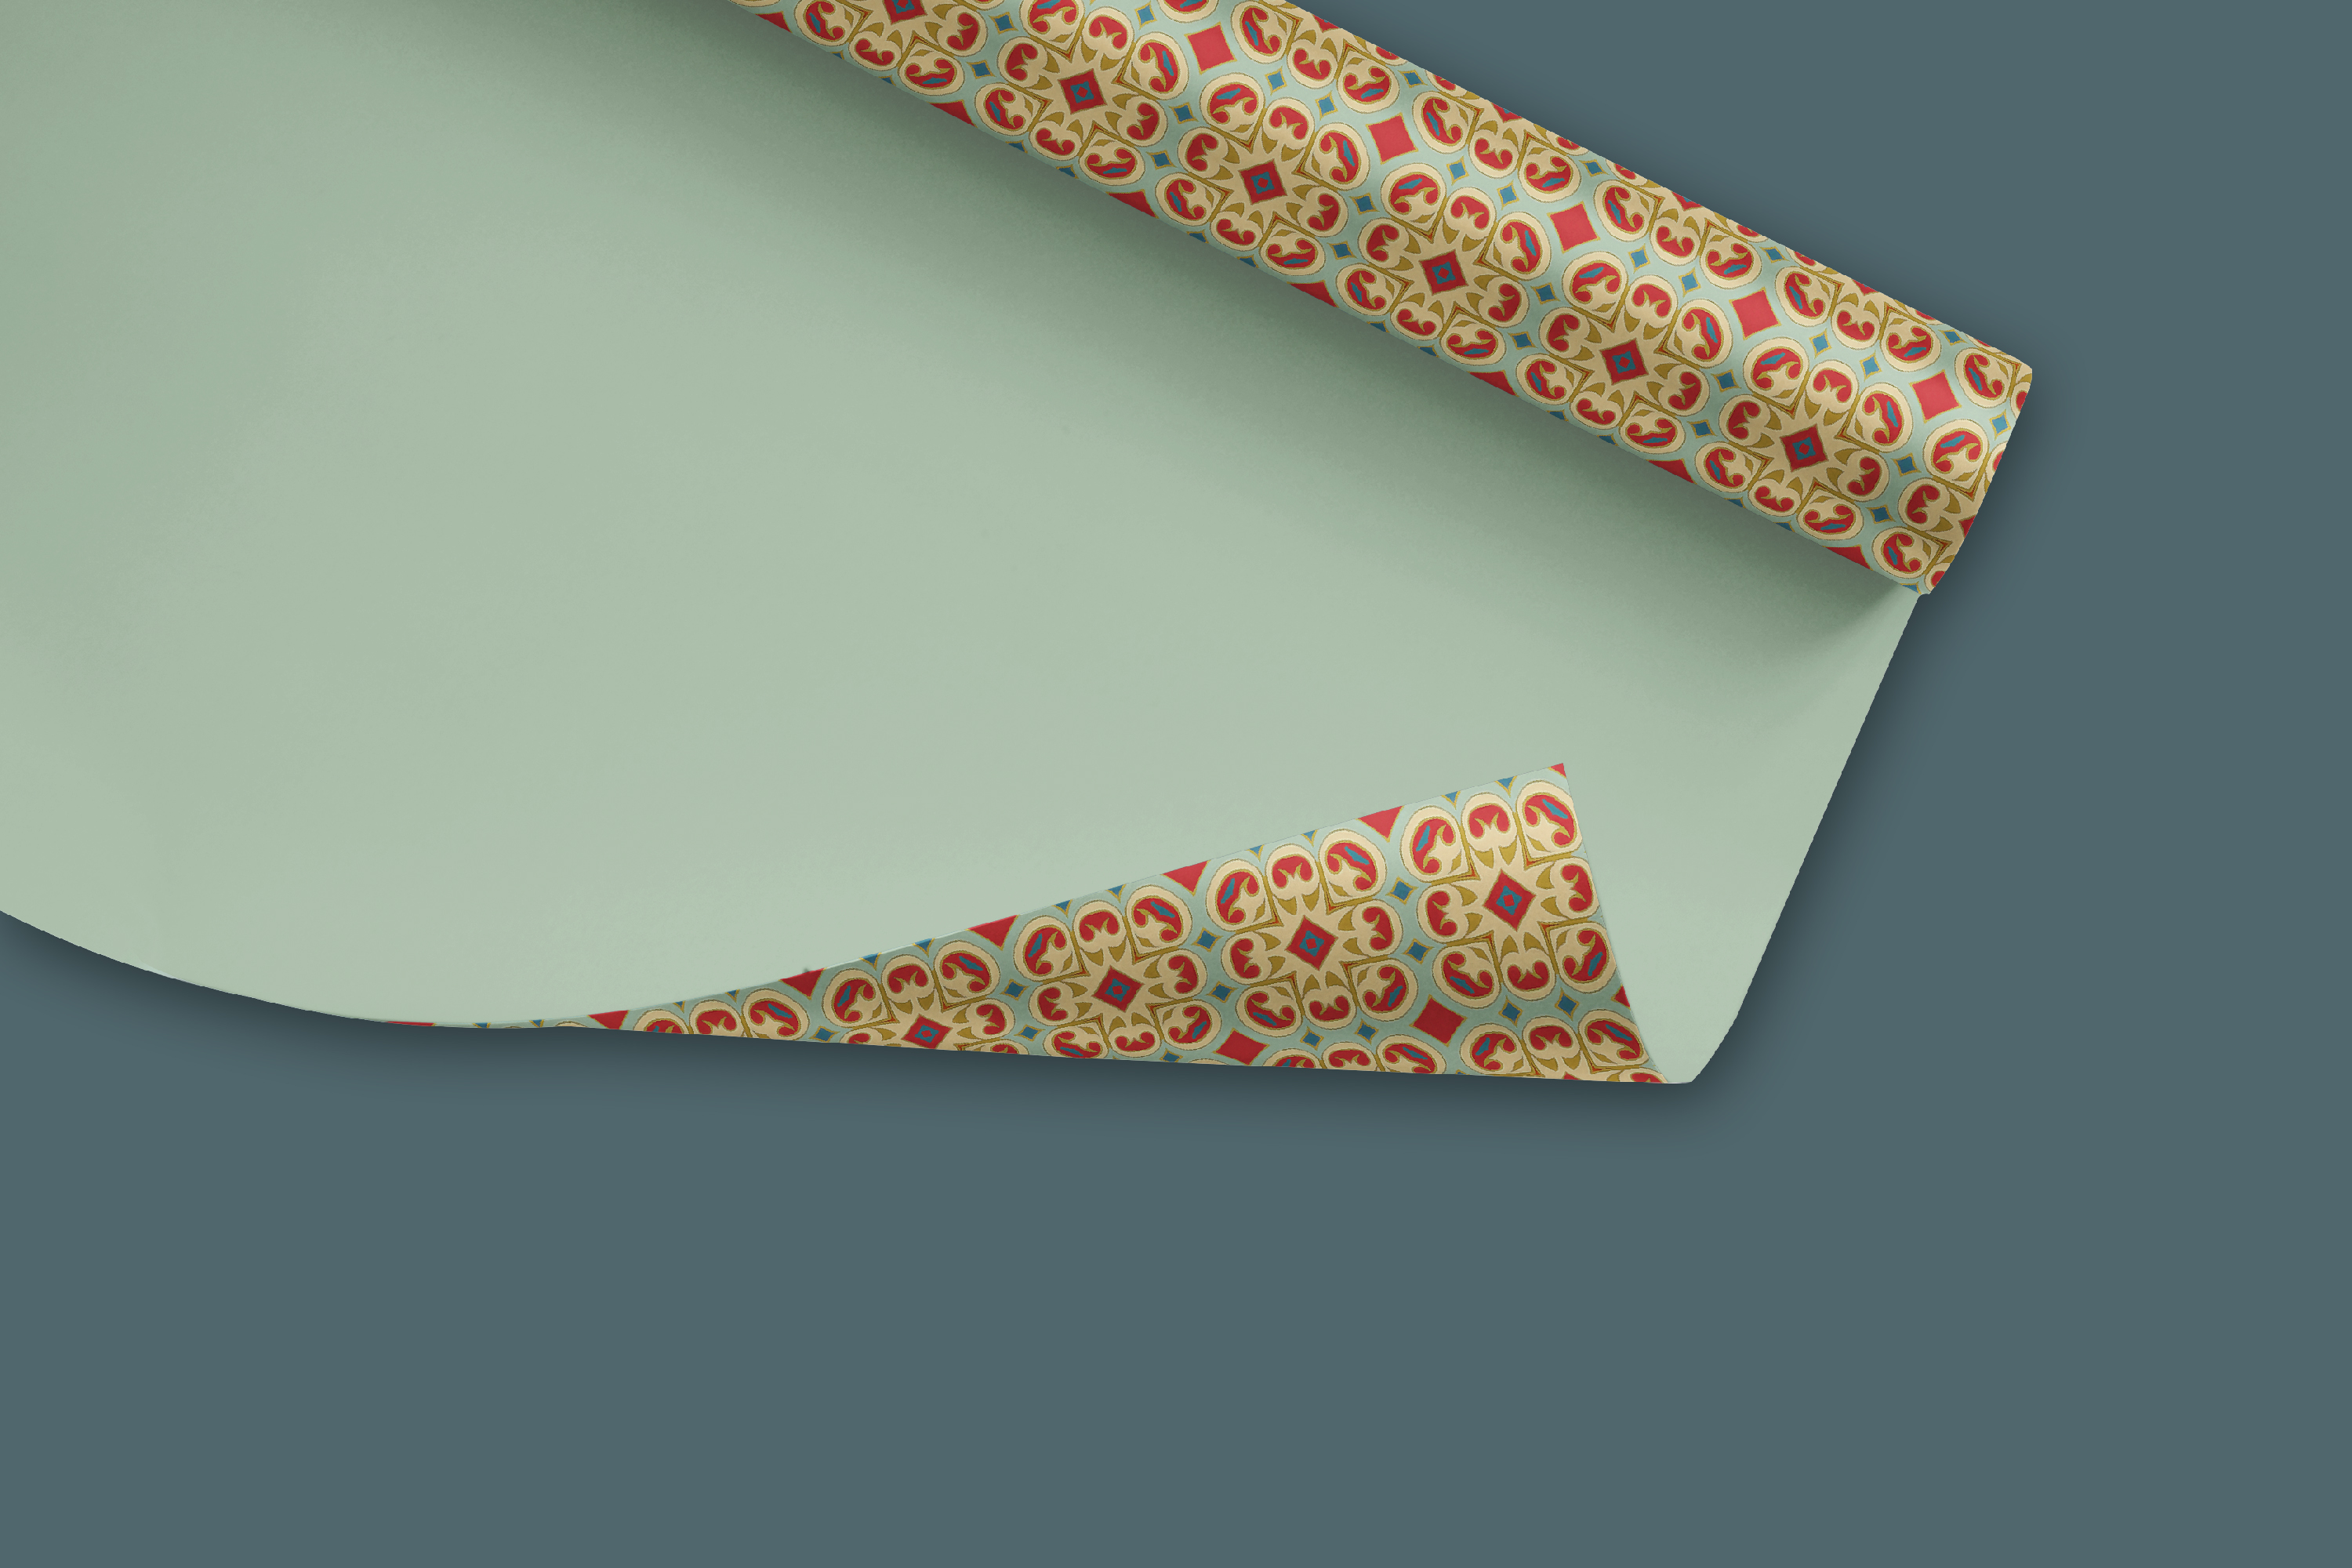 38 Arabesque Papers JPG & 20 Seamless Tiles PS Patterns PAT example image 5